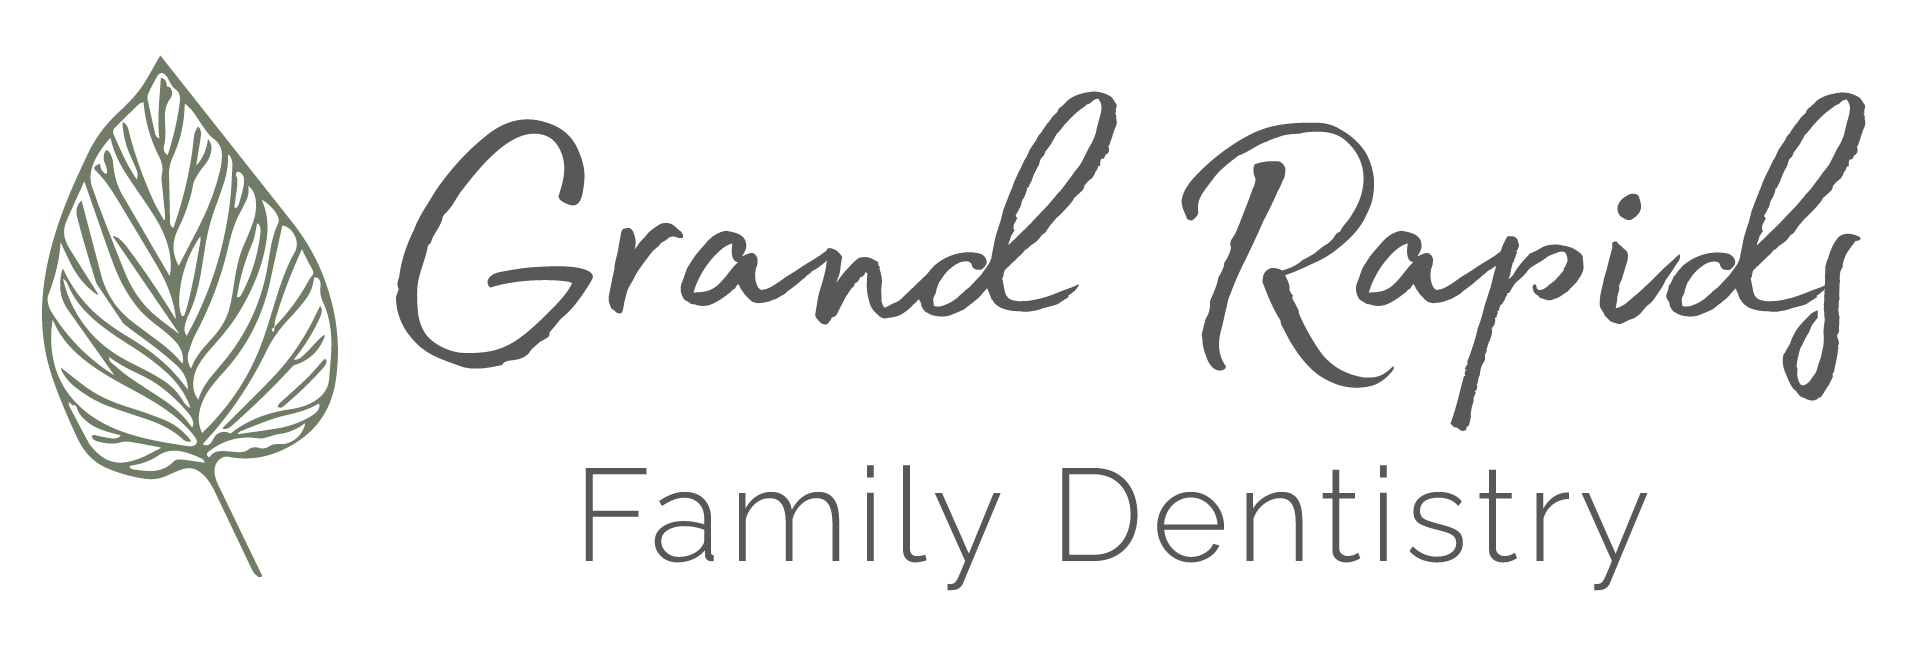 Grand Rapids Family Dentistry_Primary Logo Set-Green - Charcoal